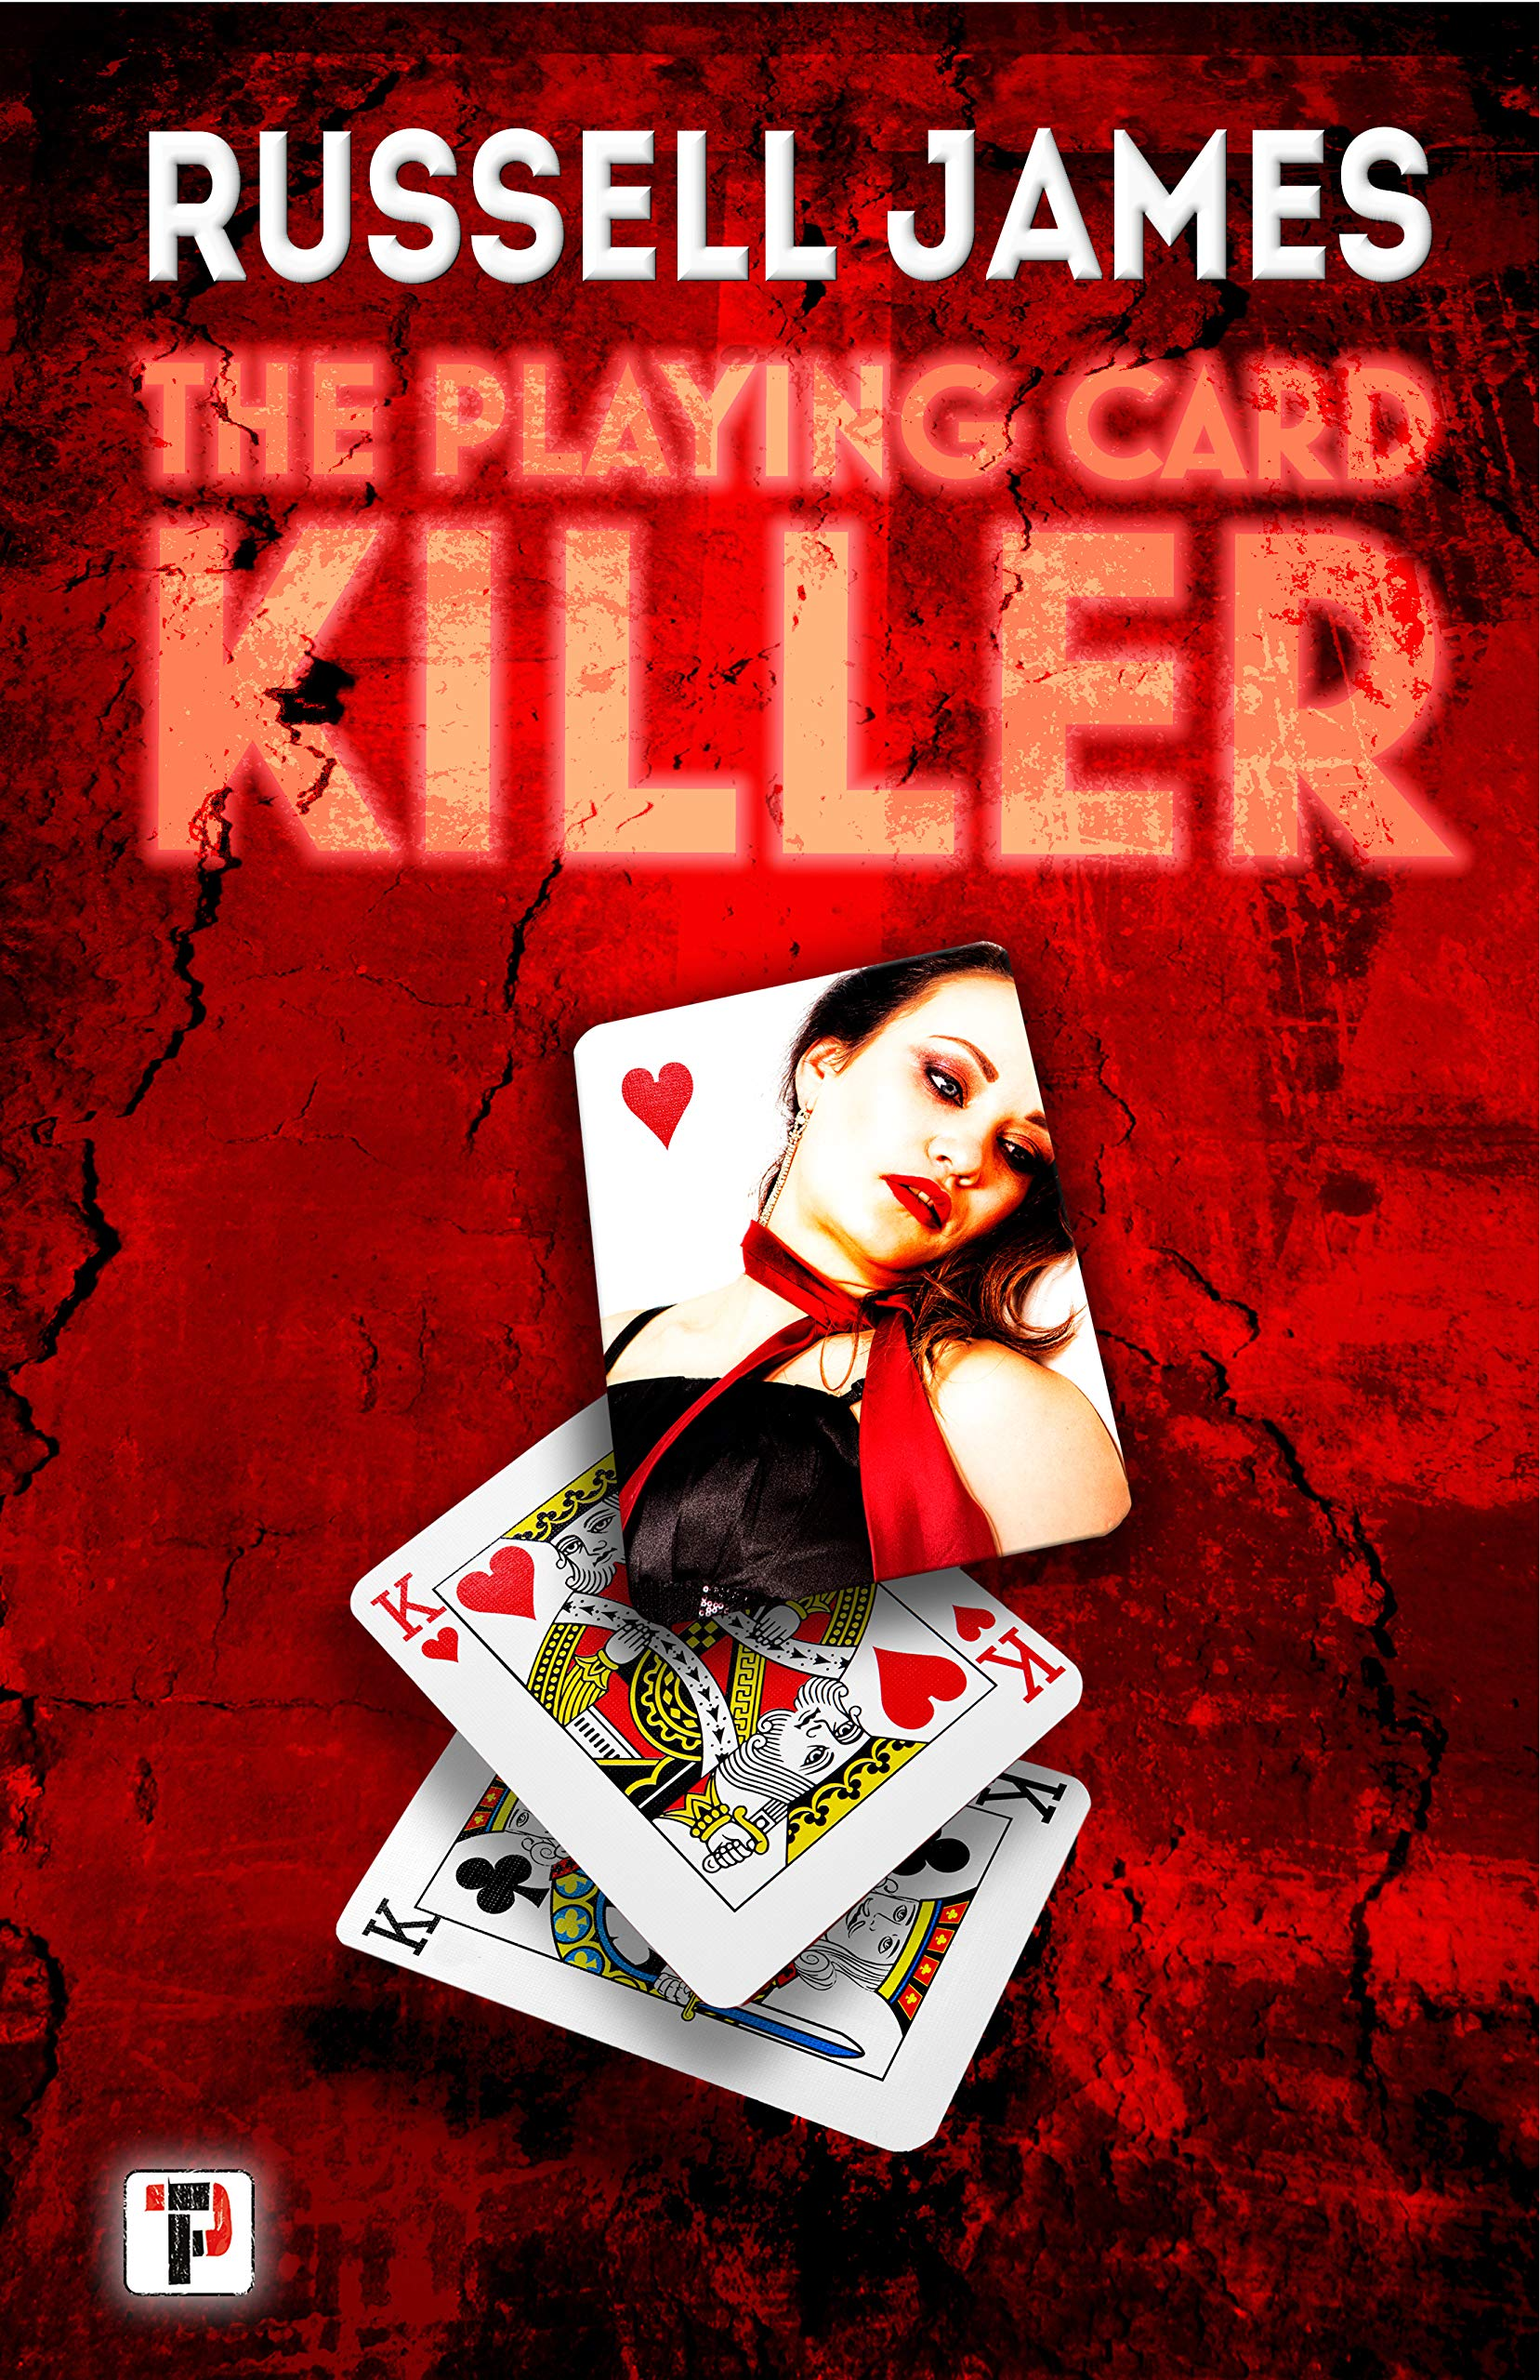 The Playing Card Killer_Russell James.jpg